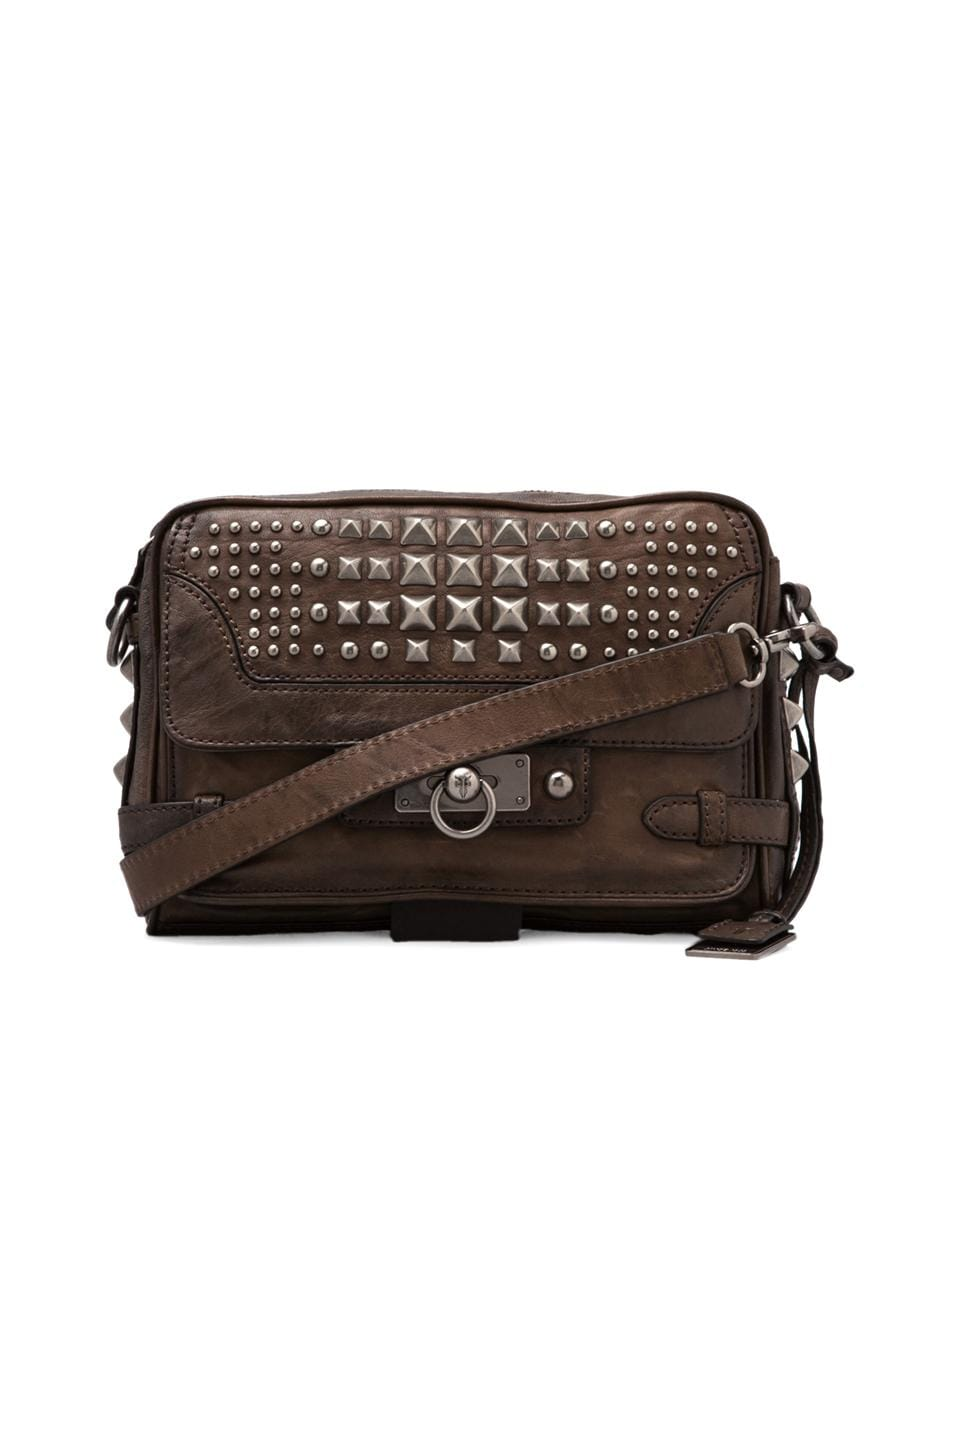 Frye Cameron Studded Clutch in Taupe